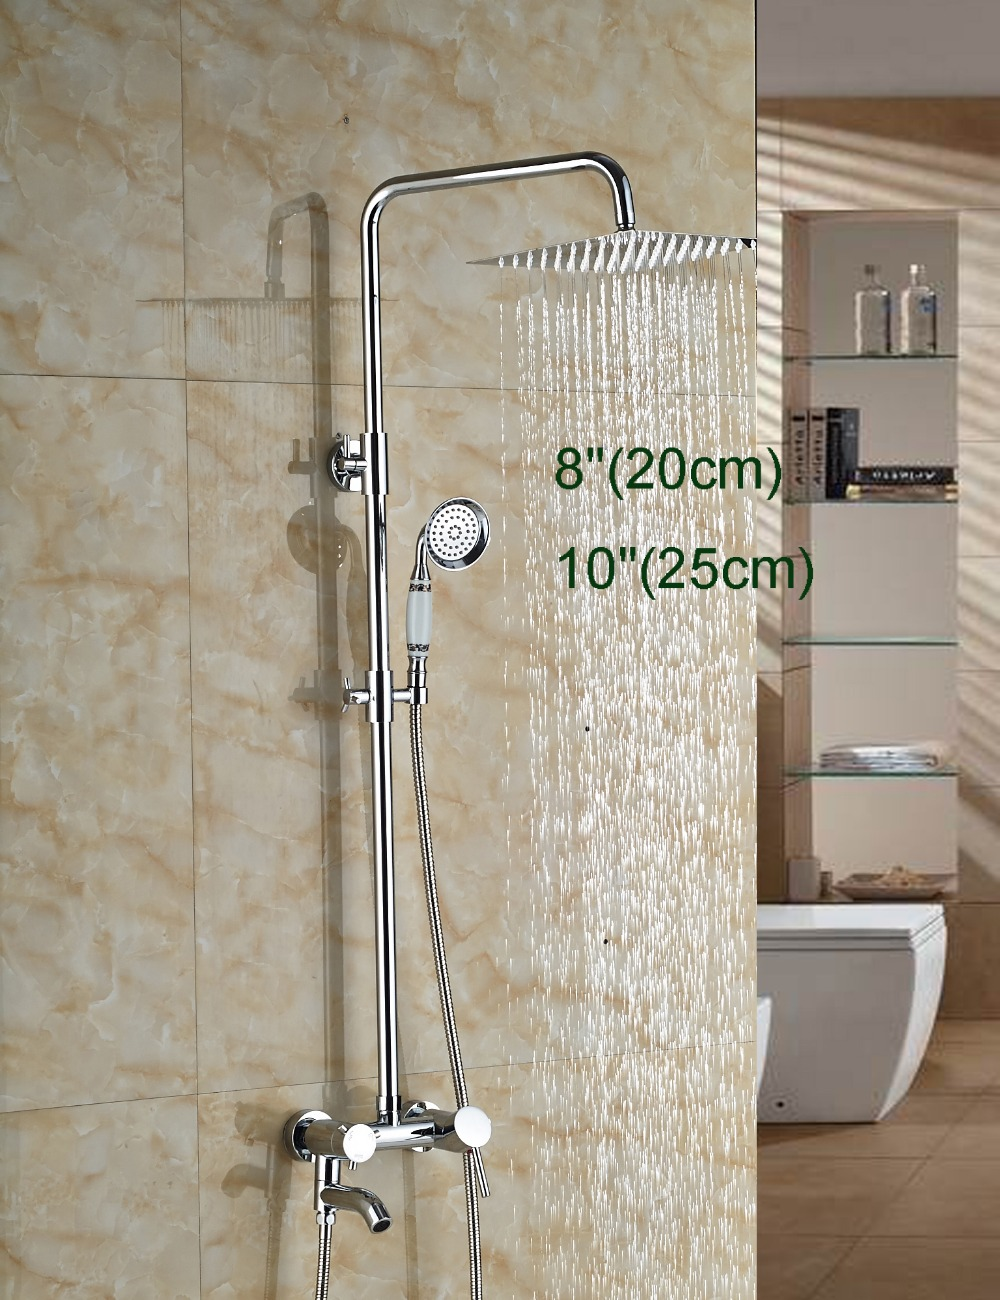 Wholesale And Retail Wall Mounted Chrome Finish Square Ultrathin Shower Head Faucet Tub Spout Valve Mixer Tap W/ Hand Unit wholesale and retail modern chrome finish 8 inch shower faucet set rain shower head w hand shower wall mount